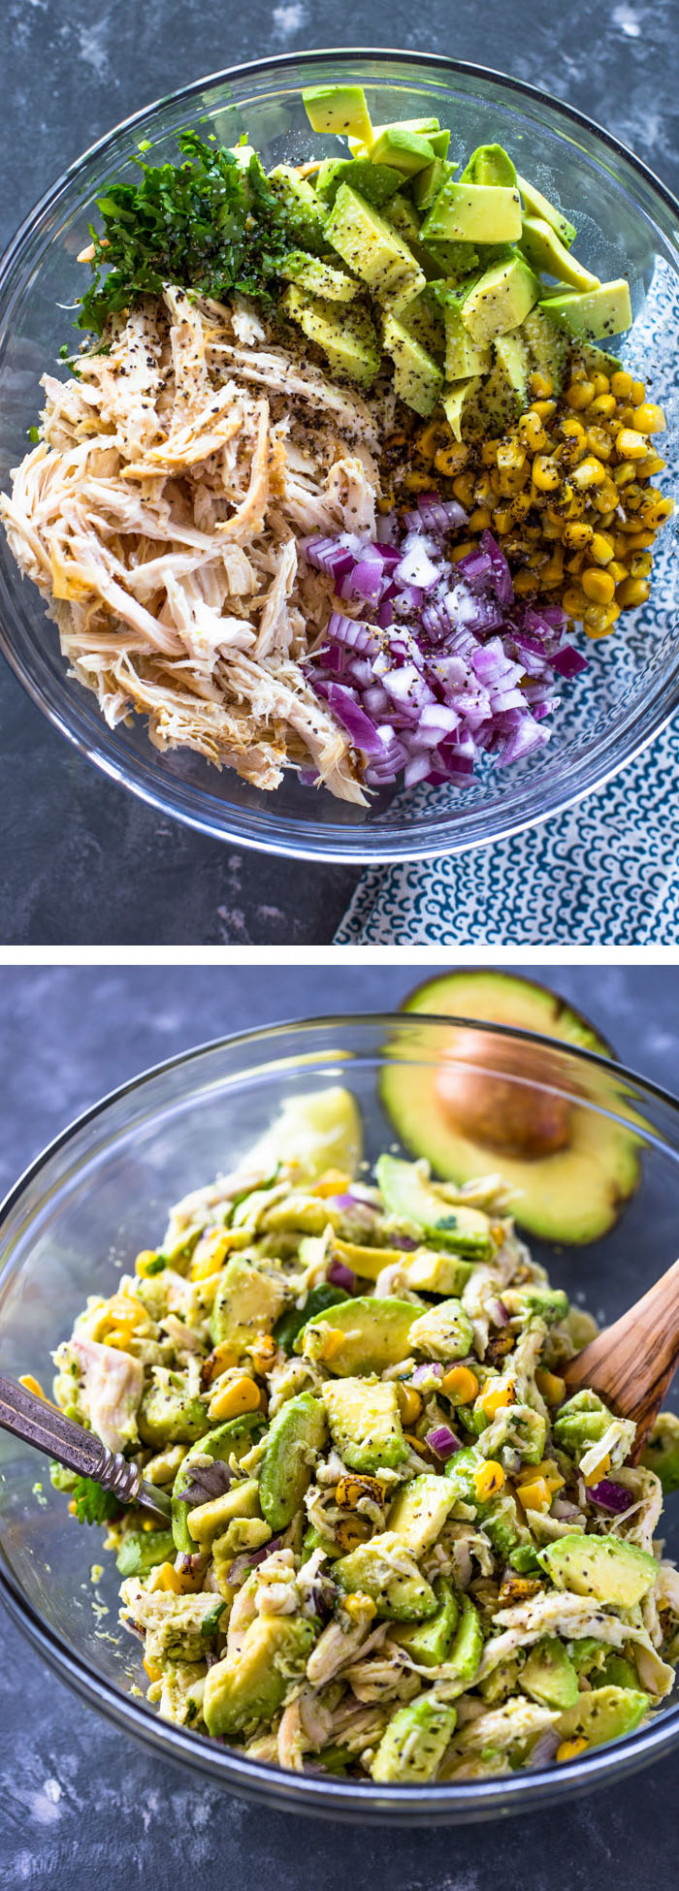 Avocado Chicken Salad - Healthy Recipes Rotisserie Chicken